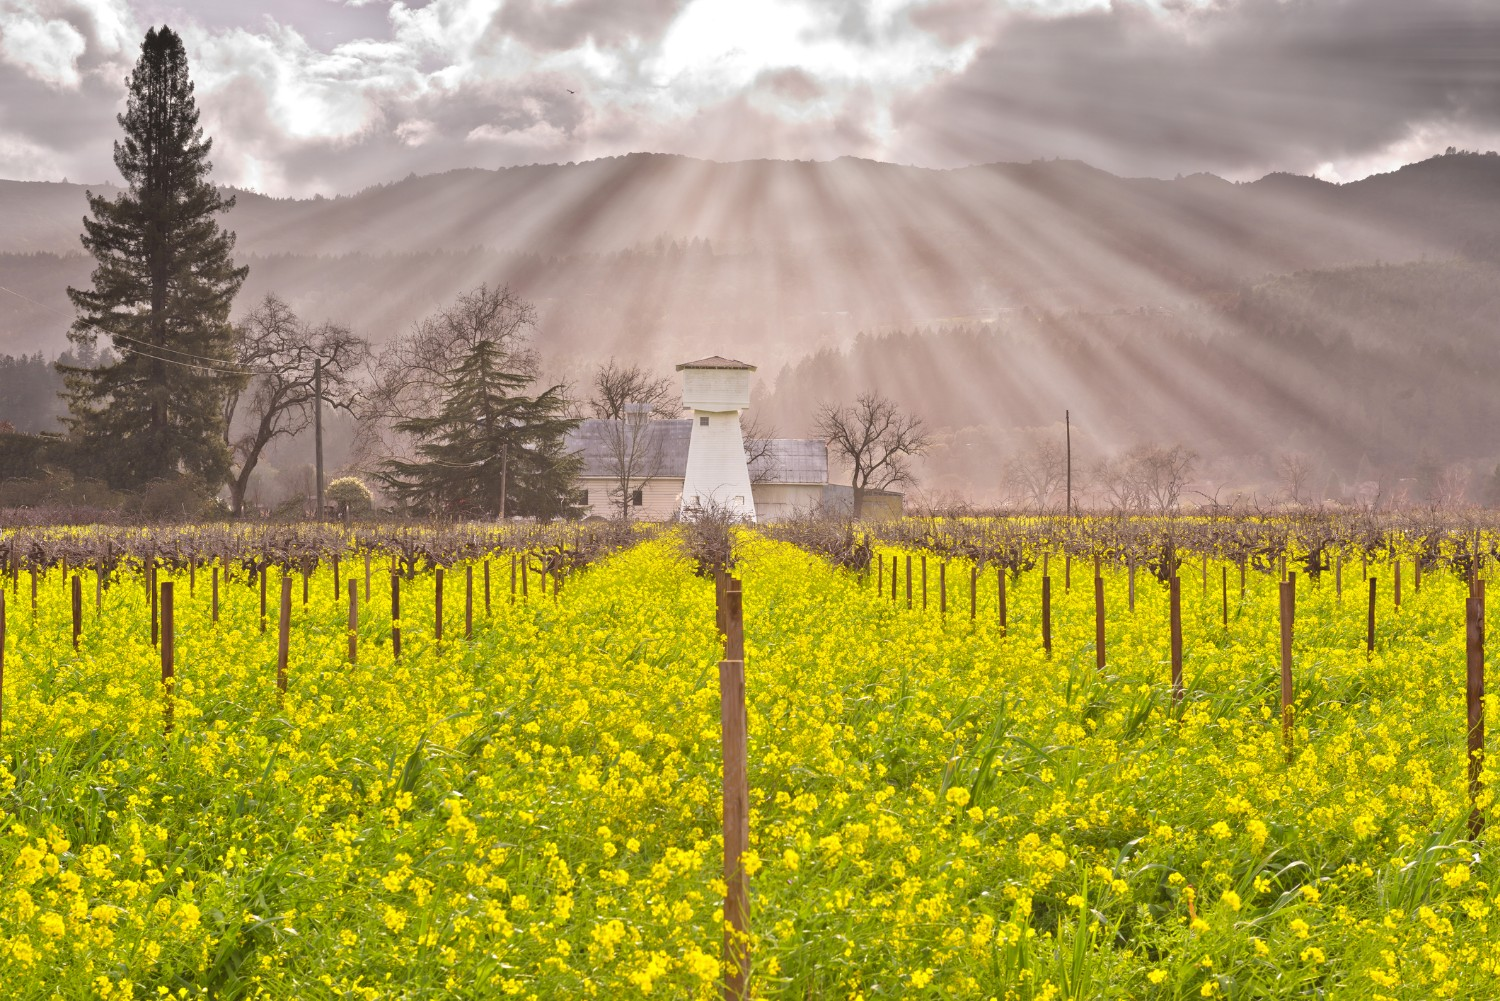 Napa Valley vineyards and mustard yellow flowers beneath a beautiful light pouring from the sky